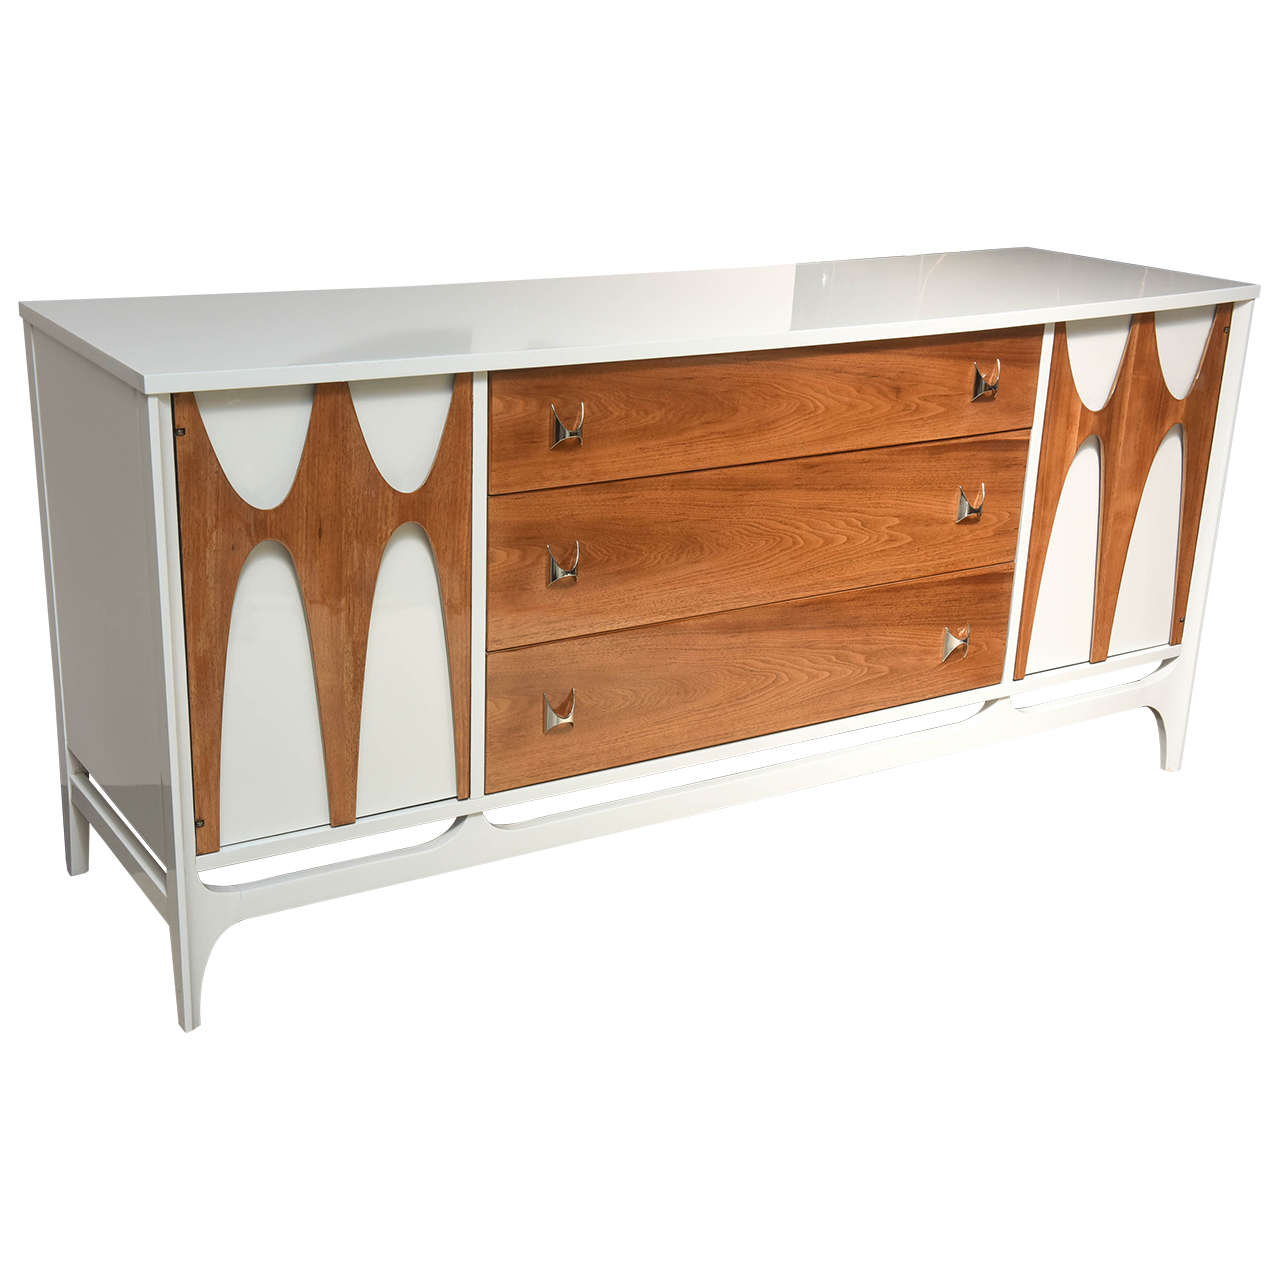 634ffdfe5a78 Mid-Century Modern Broyhill Brasilia Walnut and White Lacquered Credenza  For Sale